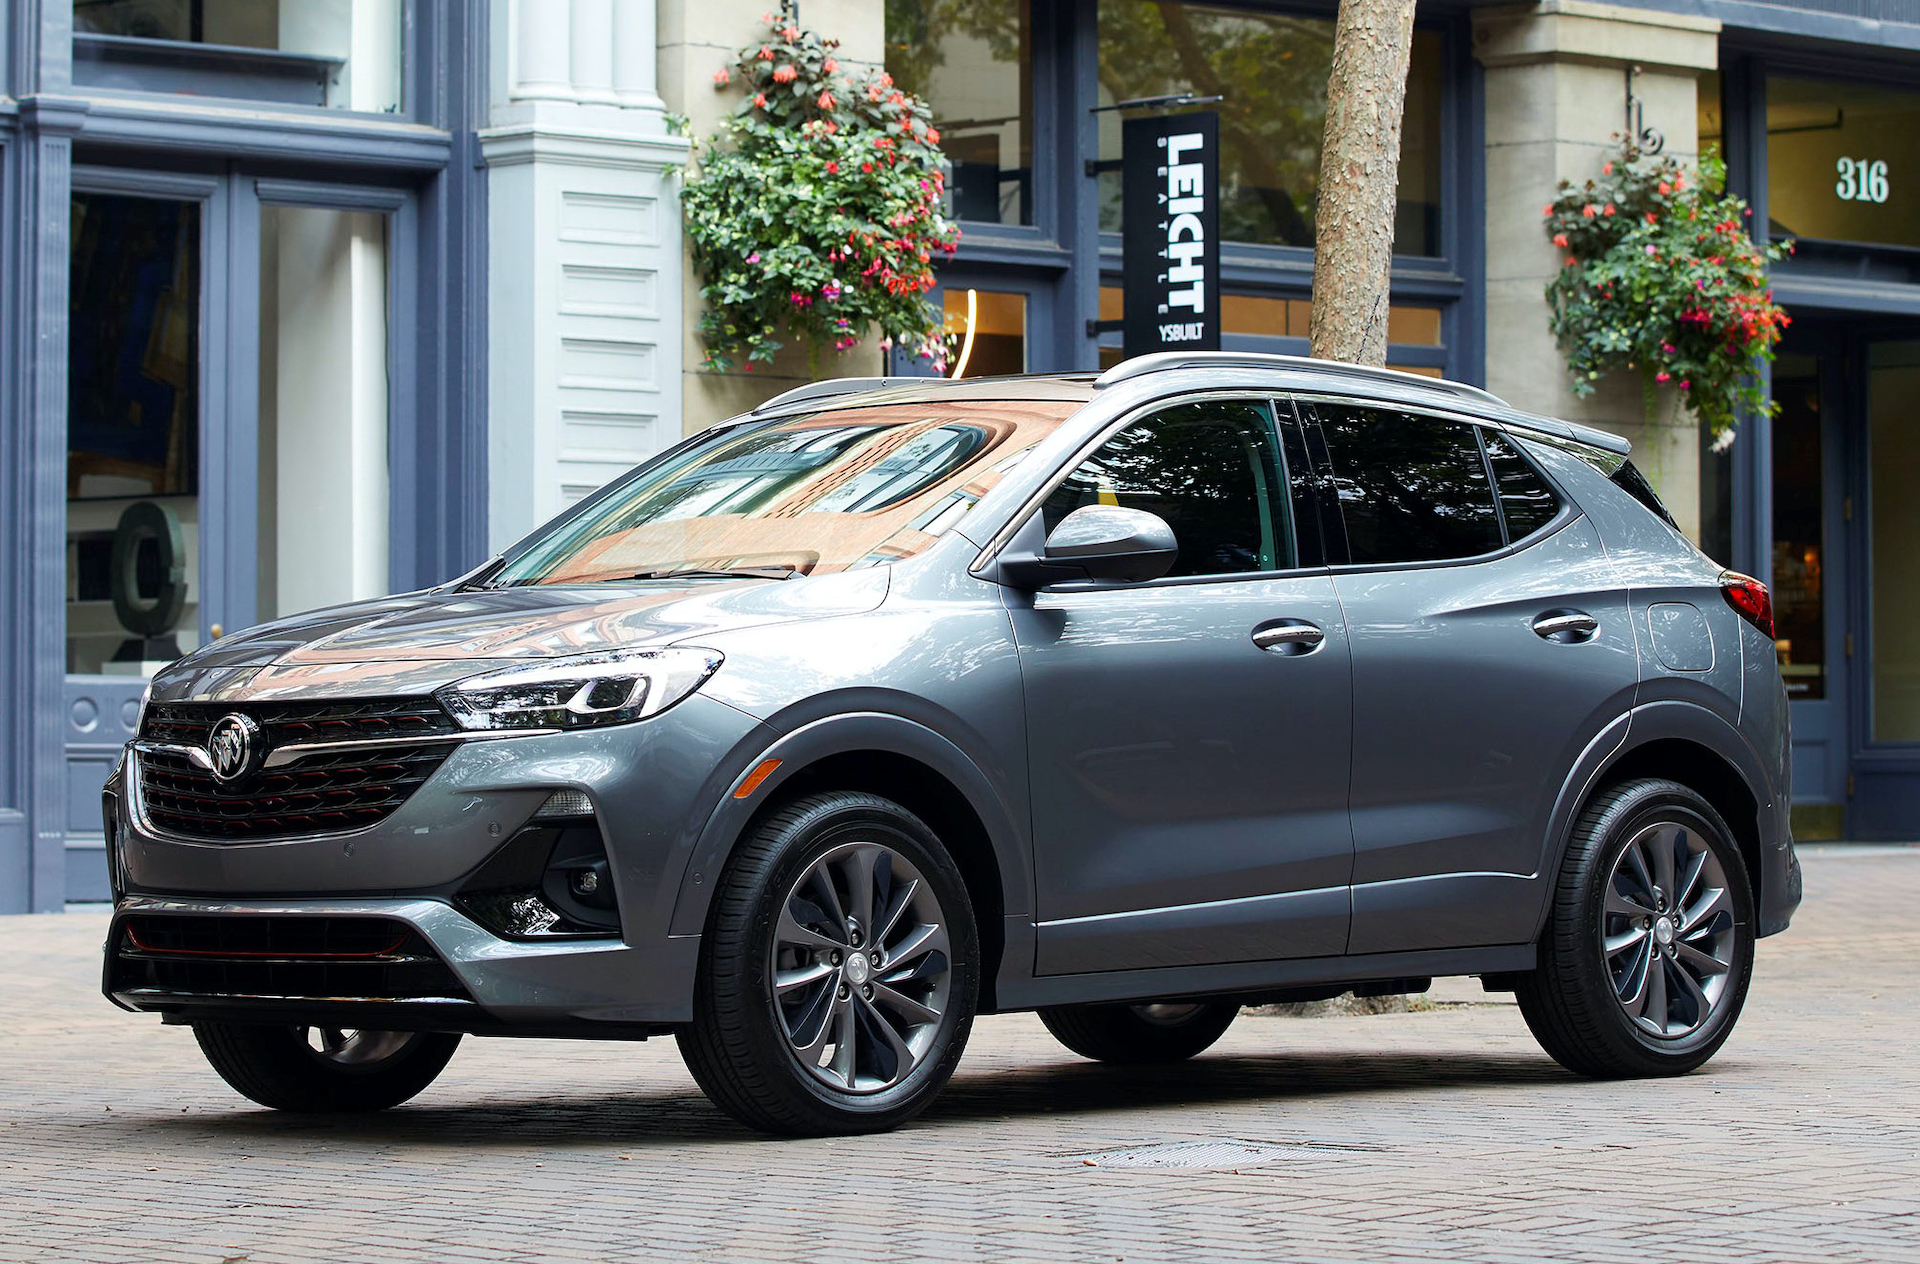 2021 Buick Encore Review, Ratings, Specs, Prices, And Photos 2021 Buick Encore Cargo Space, Cost, Curb Weight